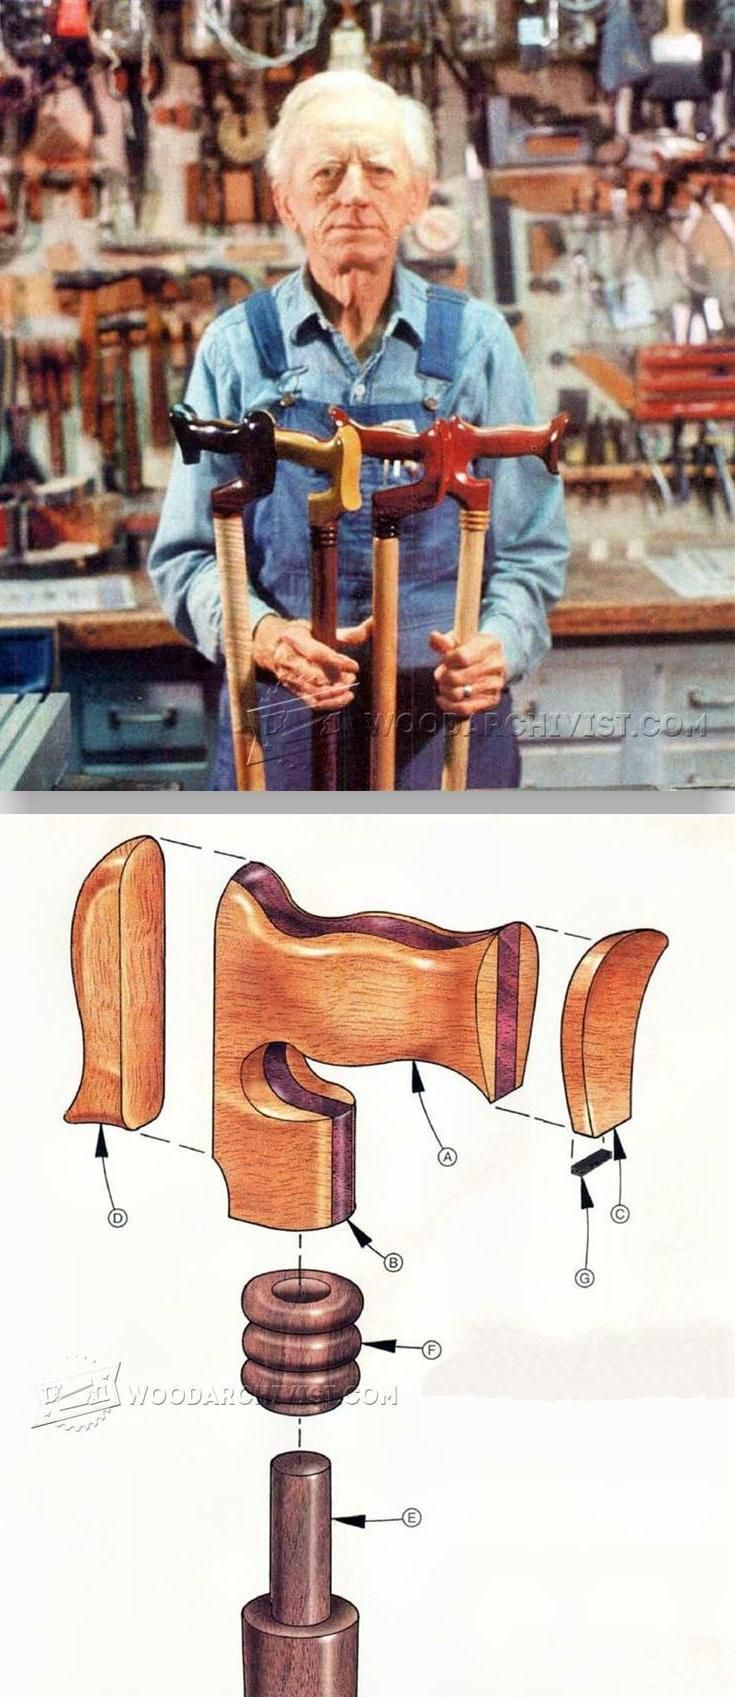 Making Walking Canes - Woodworking Plans and Projects | WoodArchivist.com